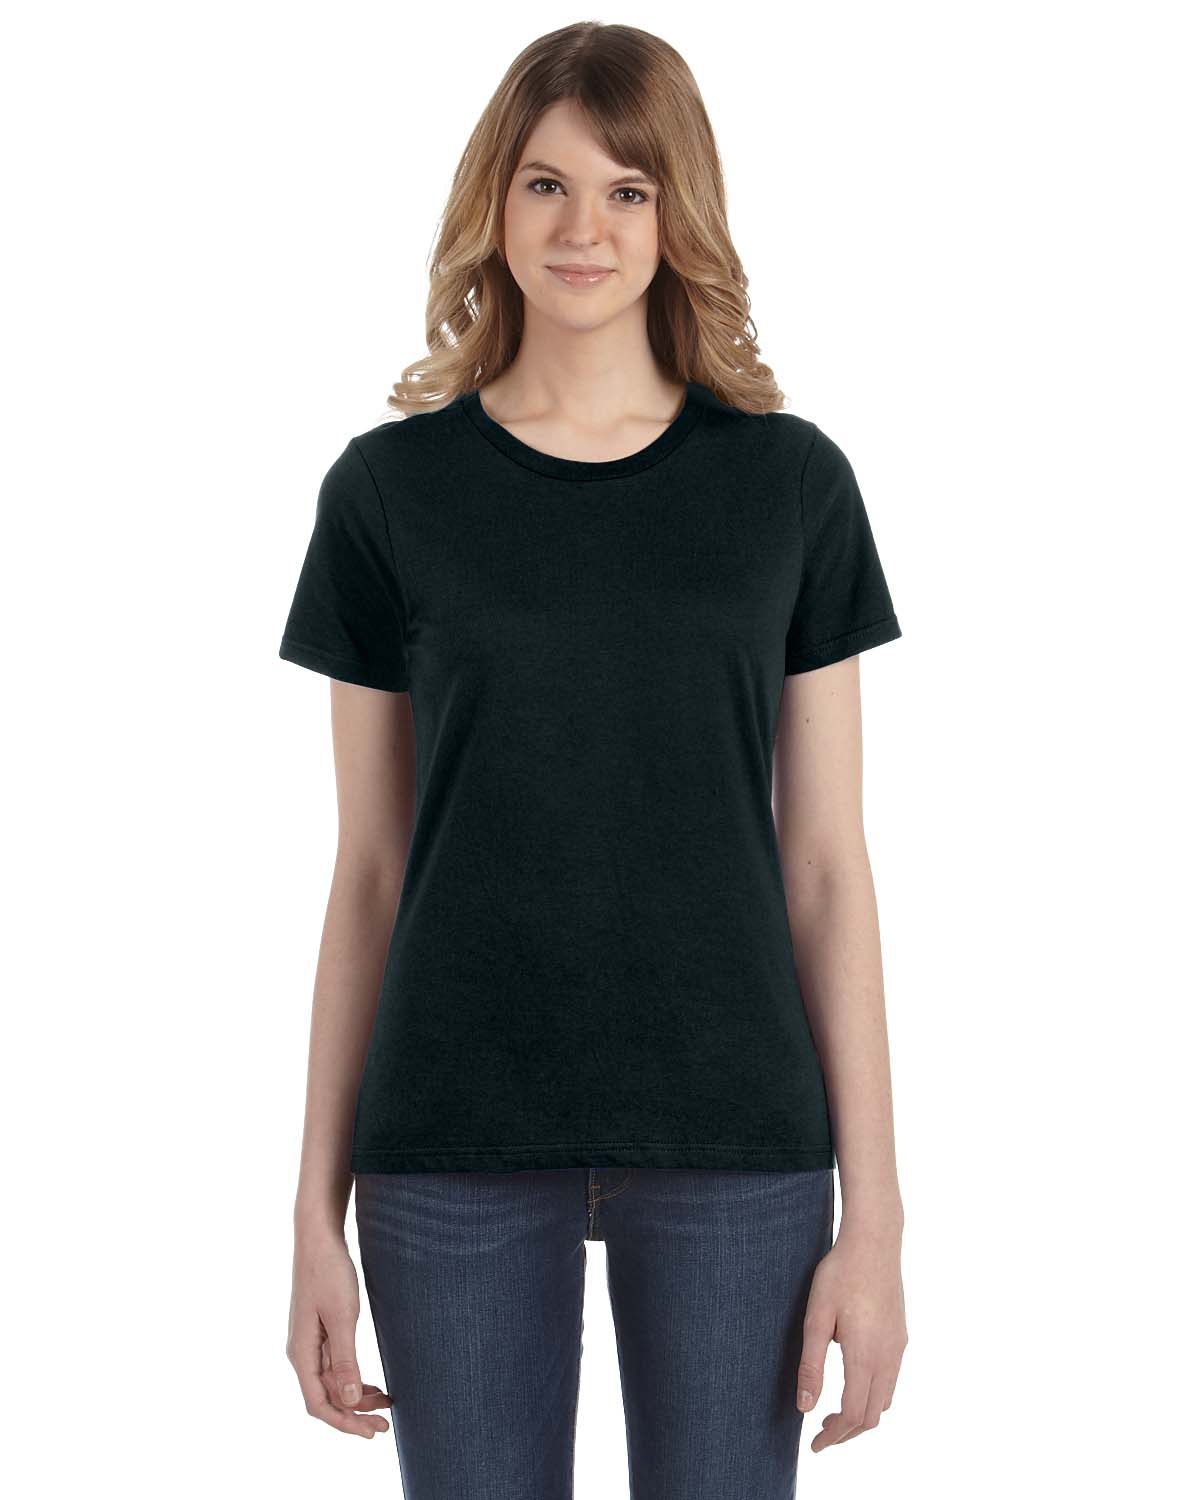 Anvil 880 Ladies' Ringspun Fashion Fit T-Shirt